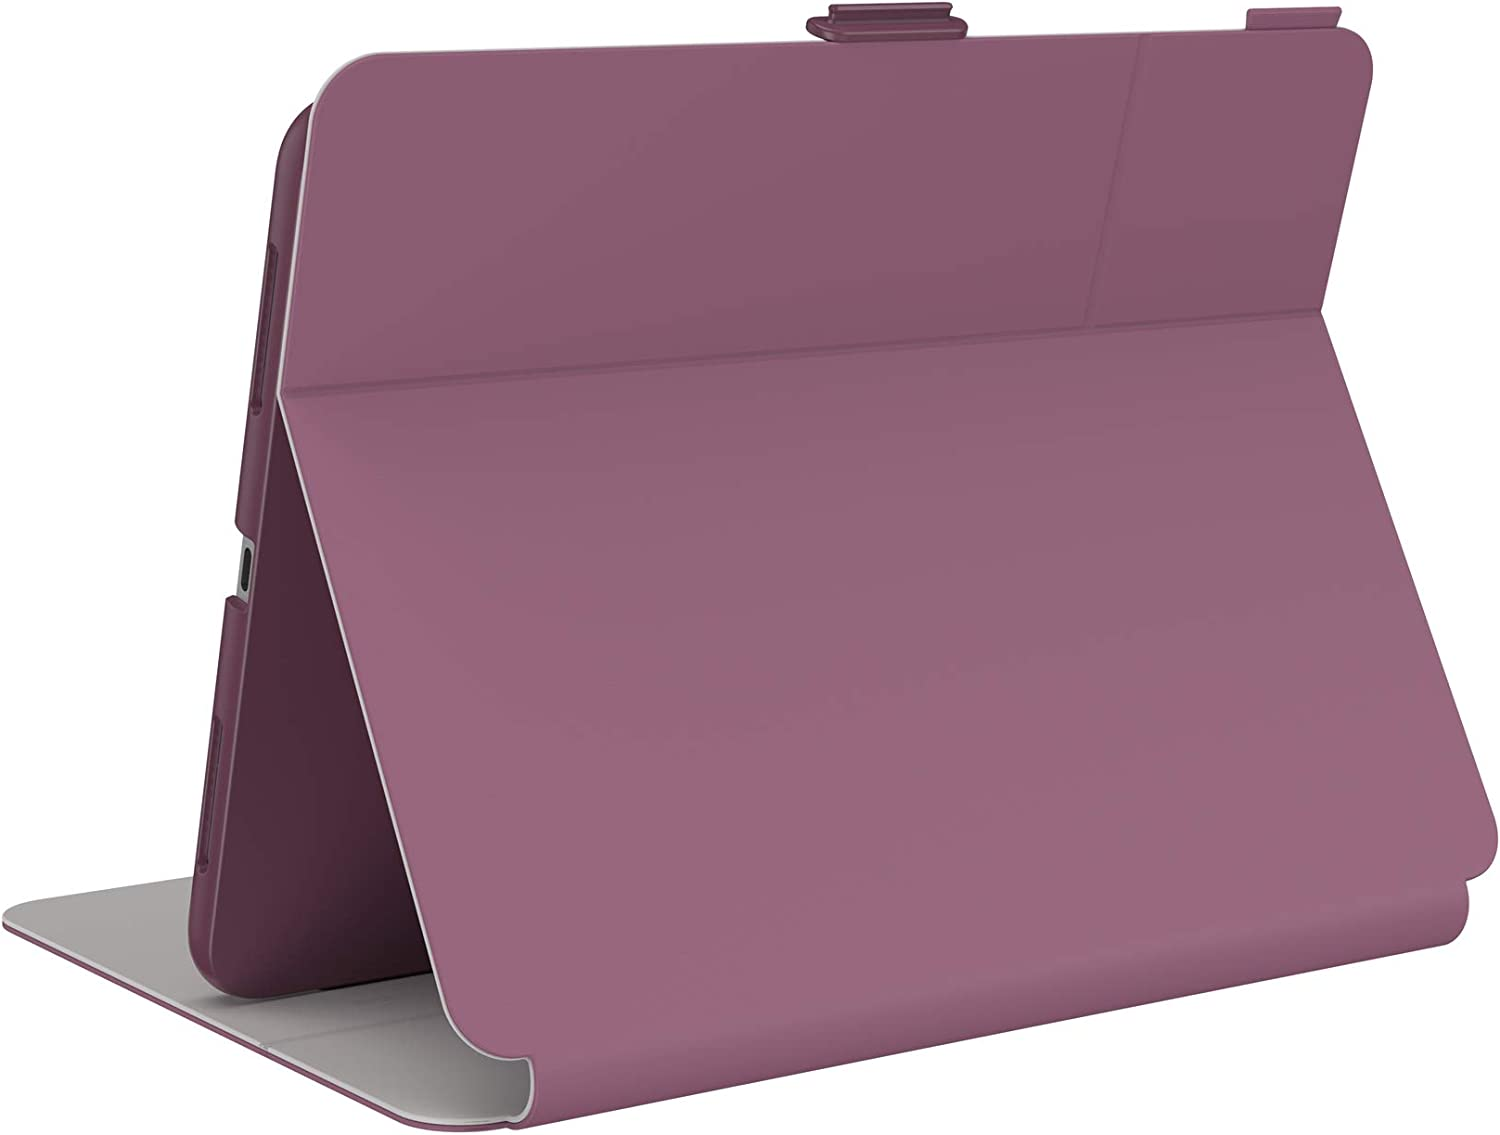 Speck Products Balance Folio iPad Air 10.9-inch Case and Stand, Plumberry Purple/Crushed Purple/Crepe Pink